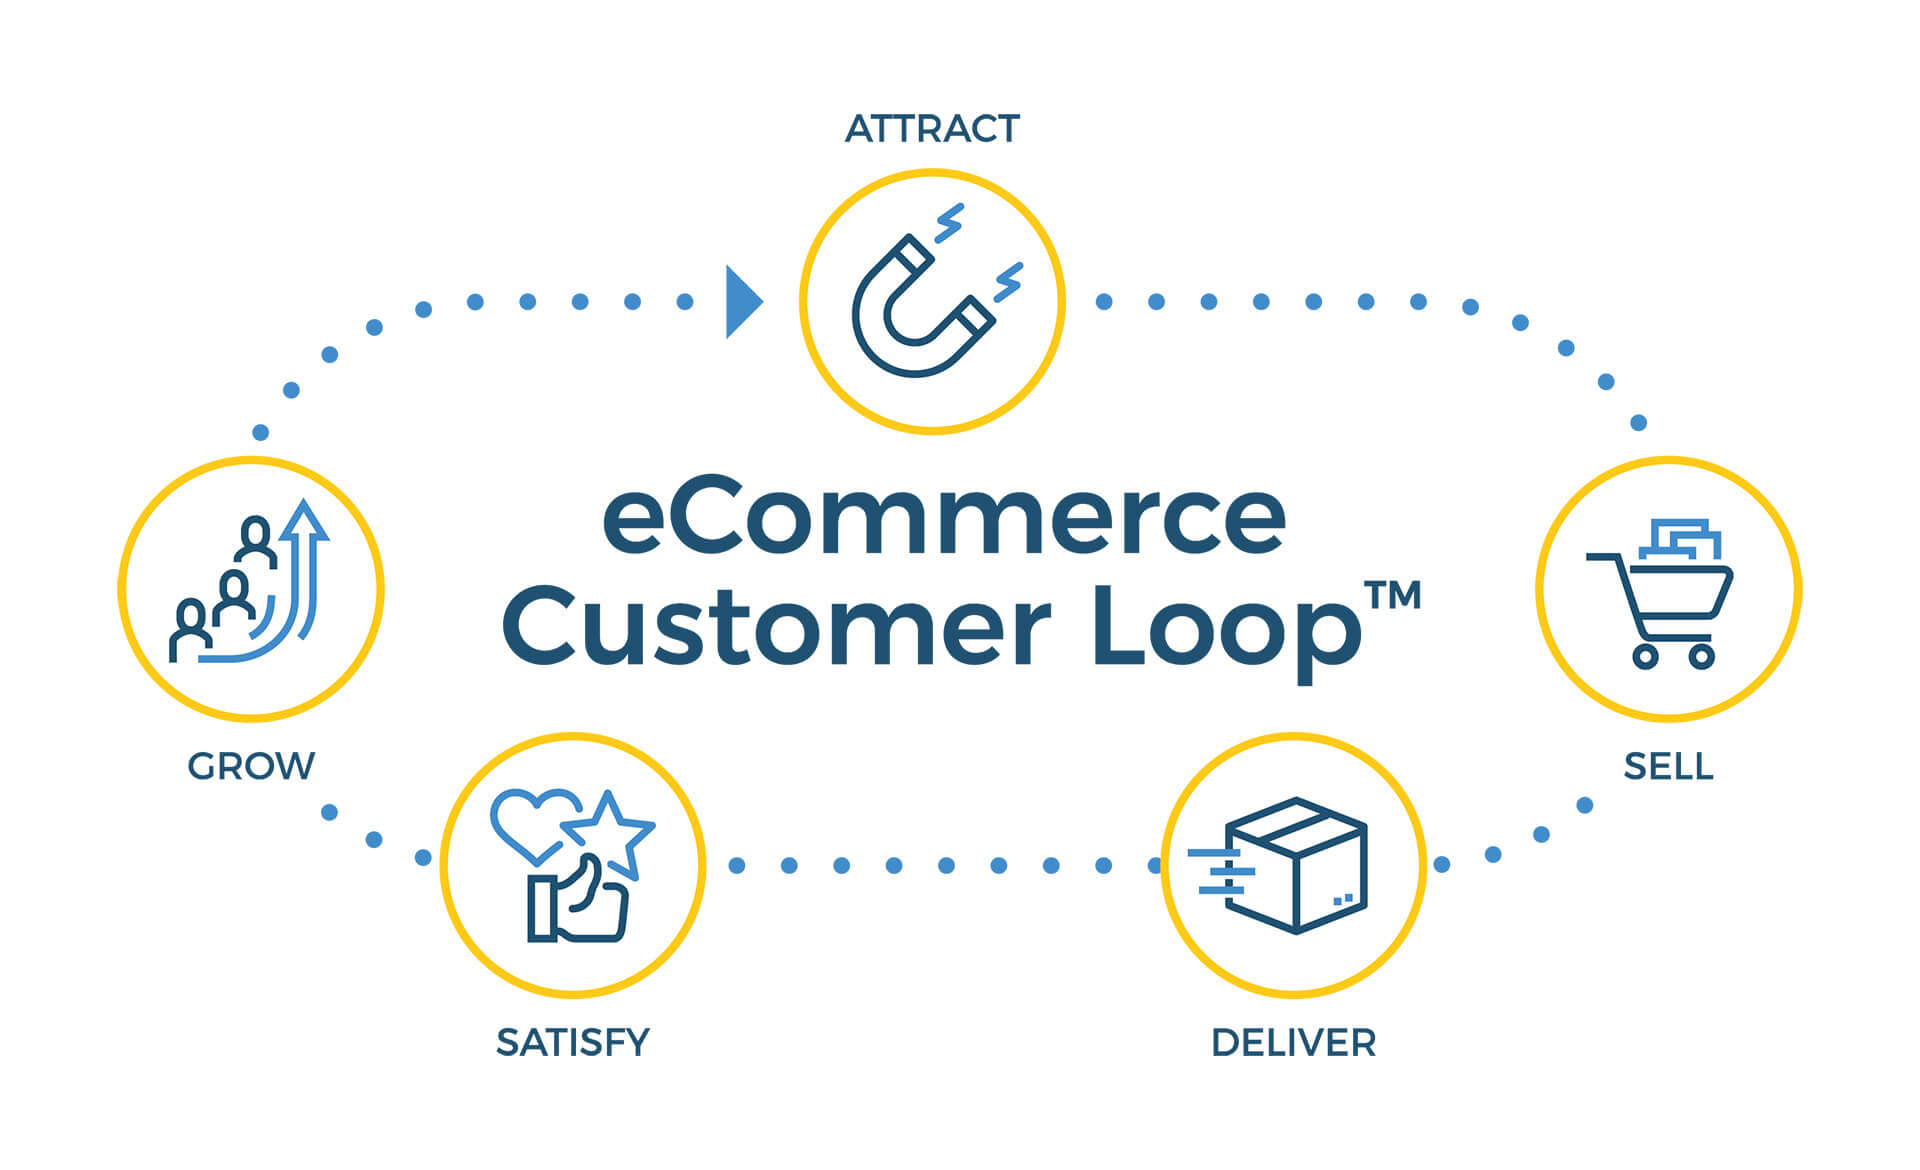 eCommerce Customer Loop for eCommerce strategy solutions